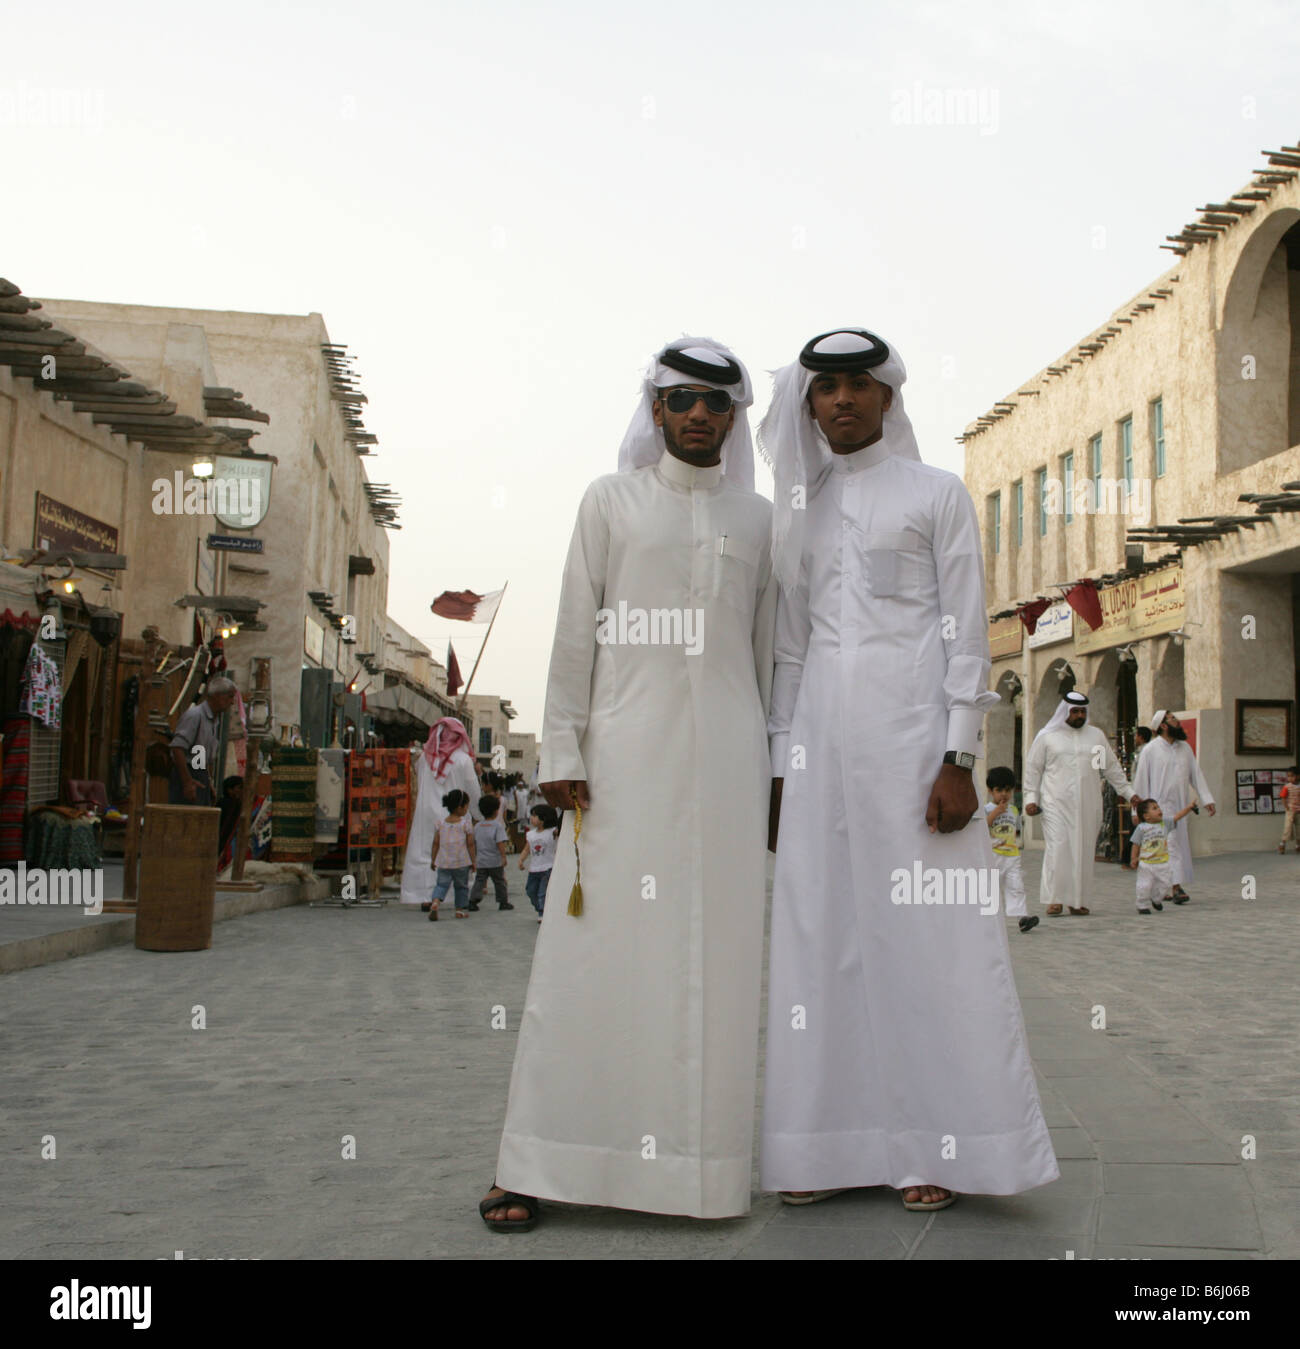 Non-Qatari women are not required to wear the abaya (a long, black robe that covers the entire body) or cover their hair. As long as you cover your shoulders and wear skirts, dresses, or .